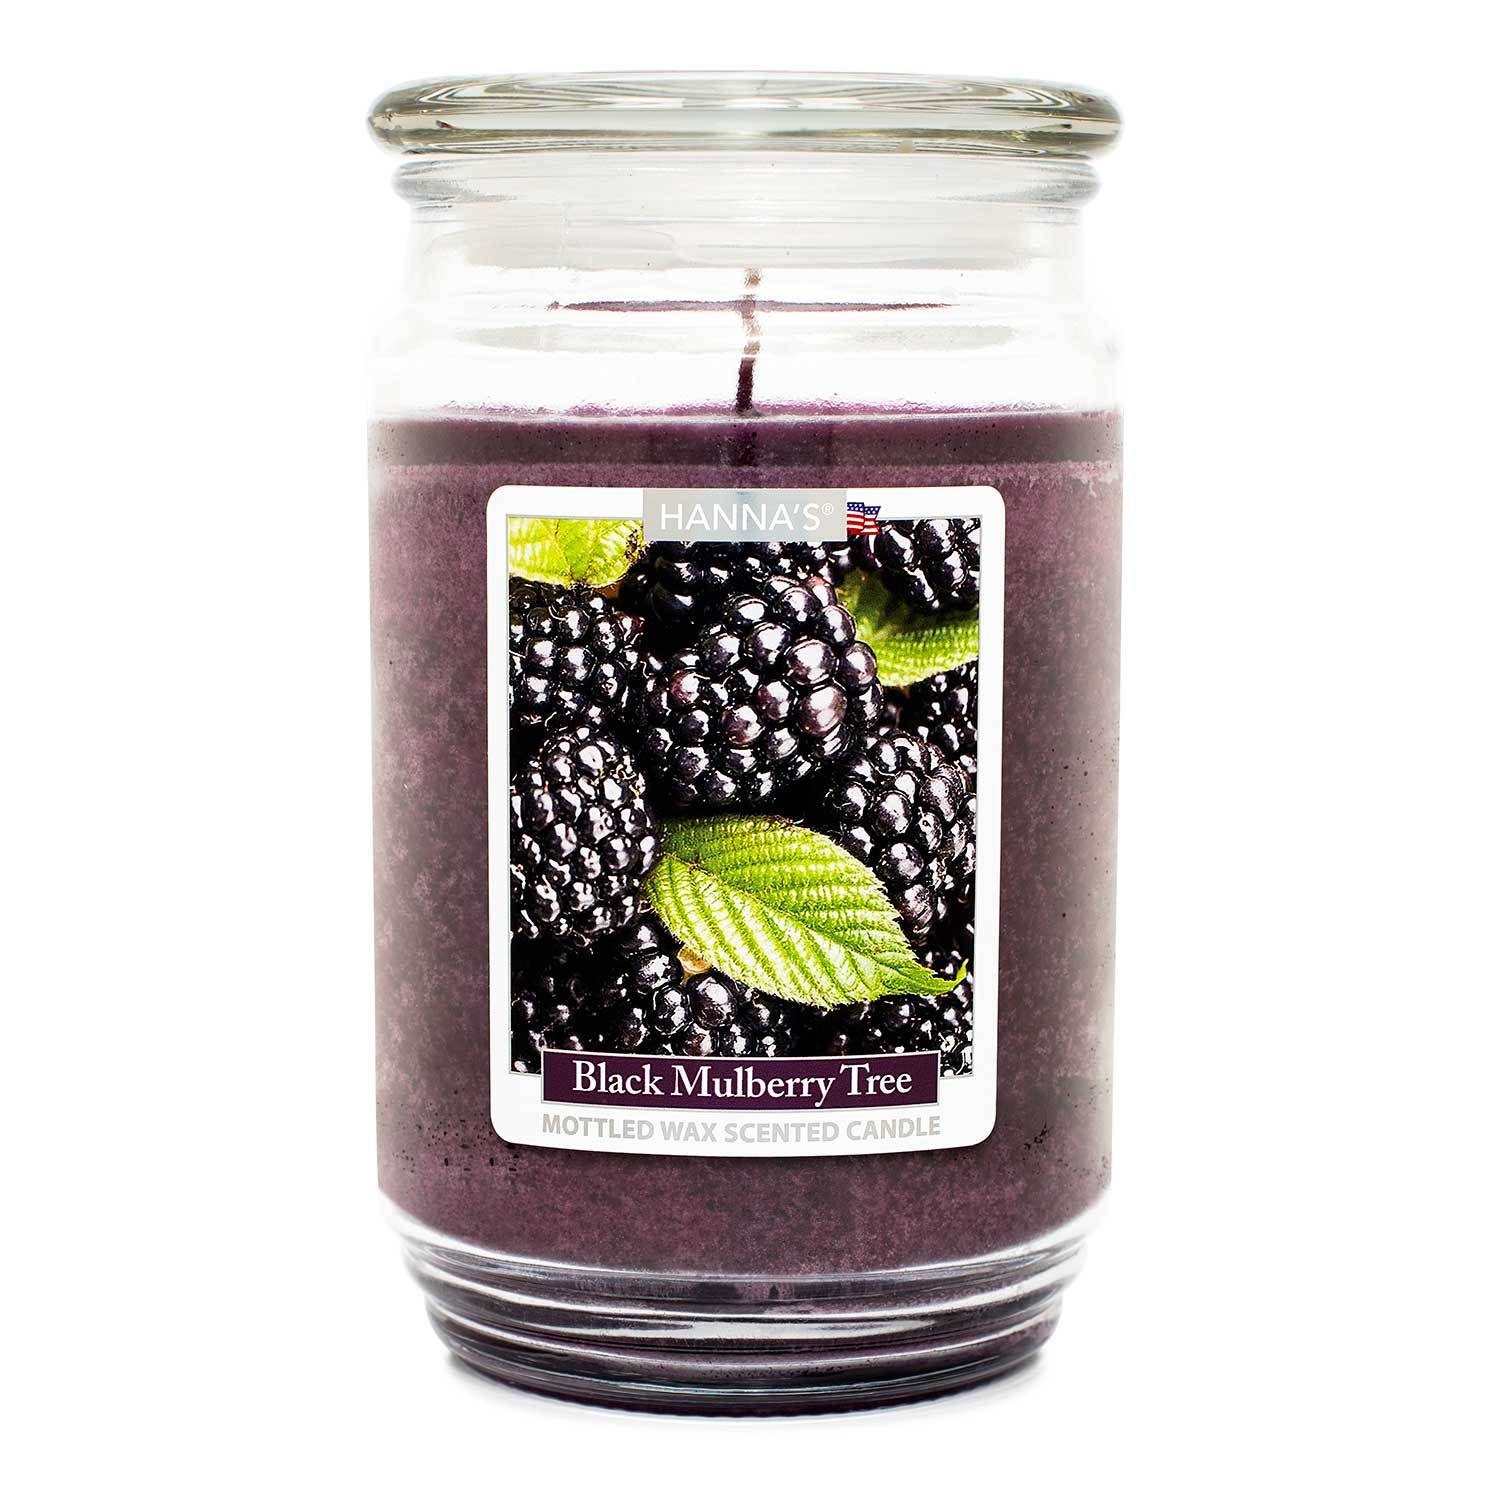 Black Mulberry Tree Scented Mottled Wax Candle - Candlemart.com